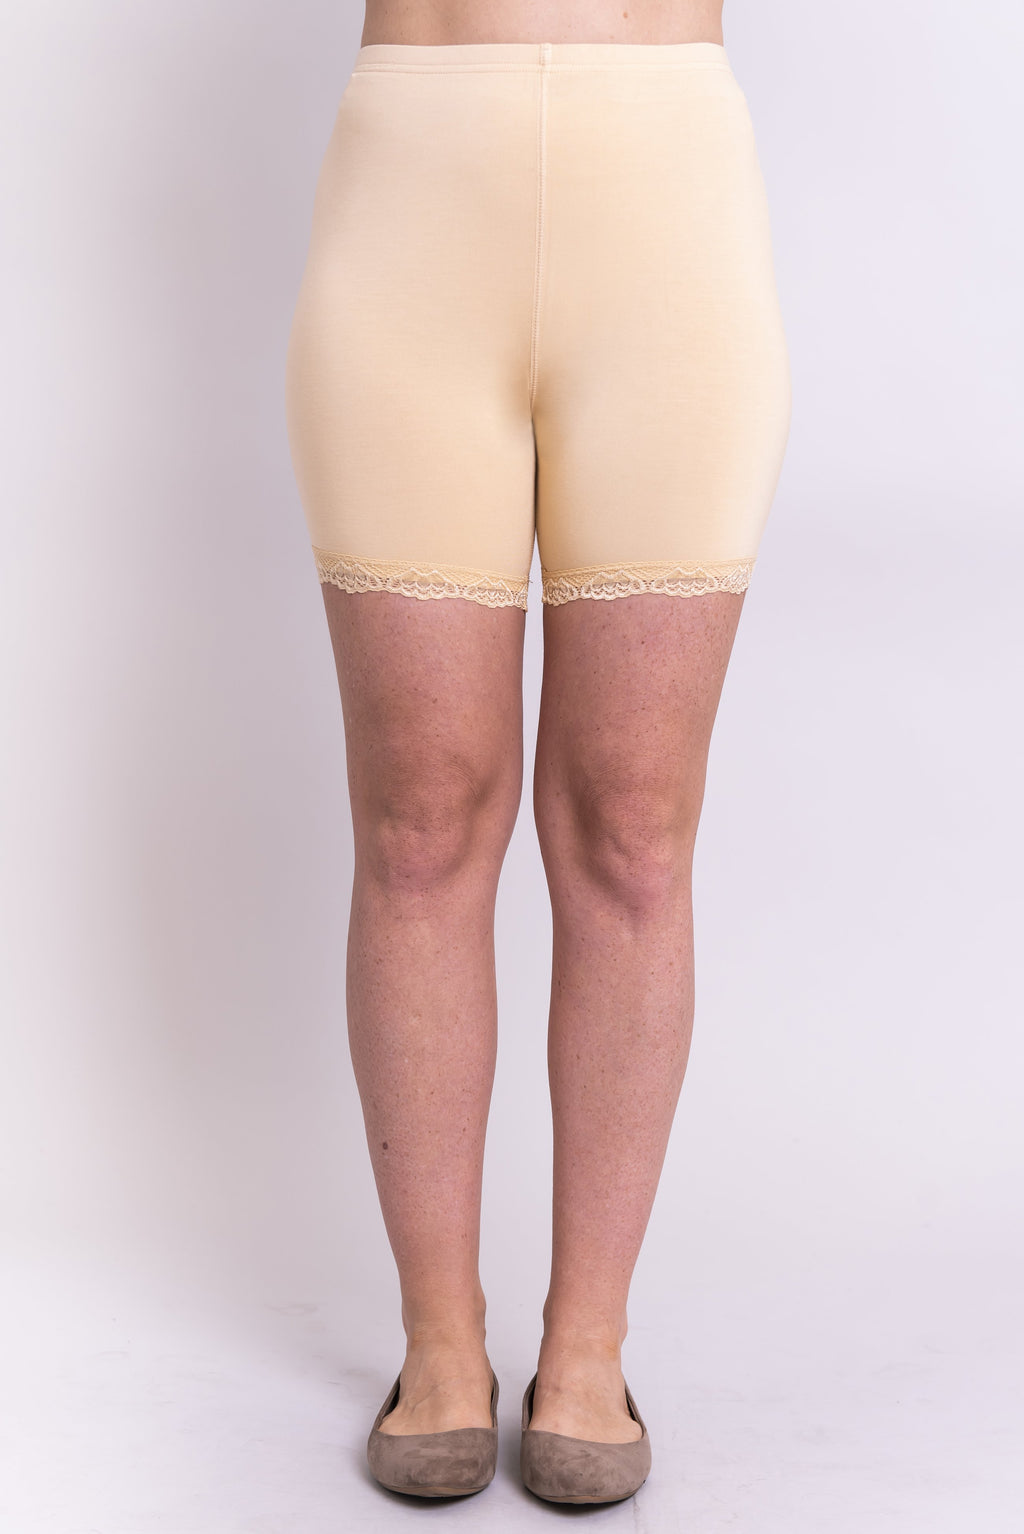 Kitty Undershorts, Beige - Blue Sky Clothing Co